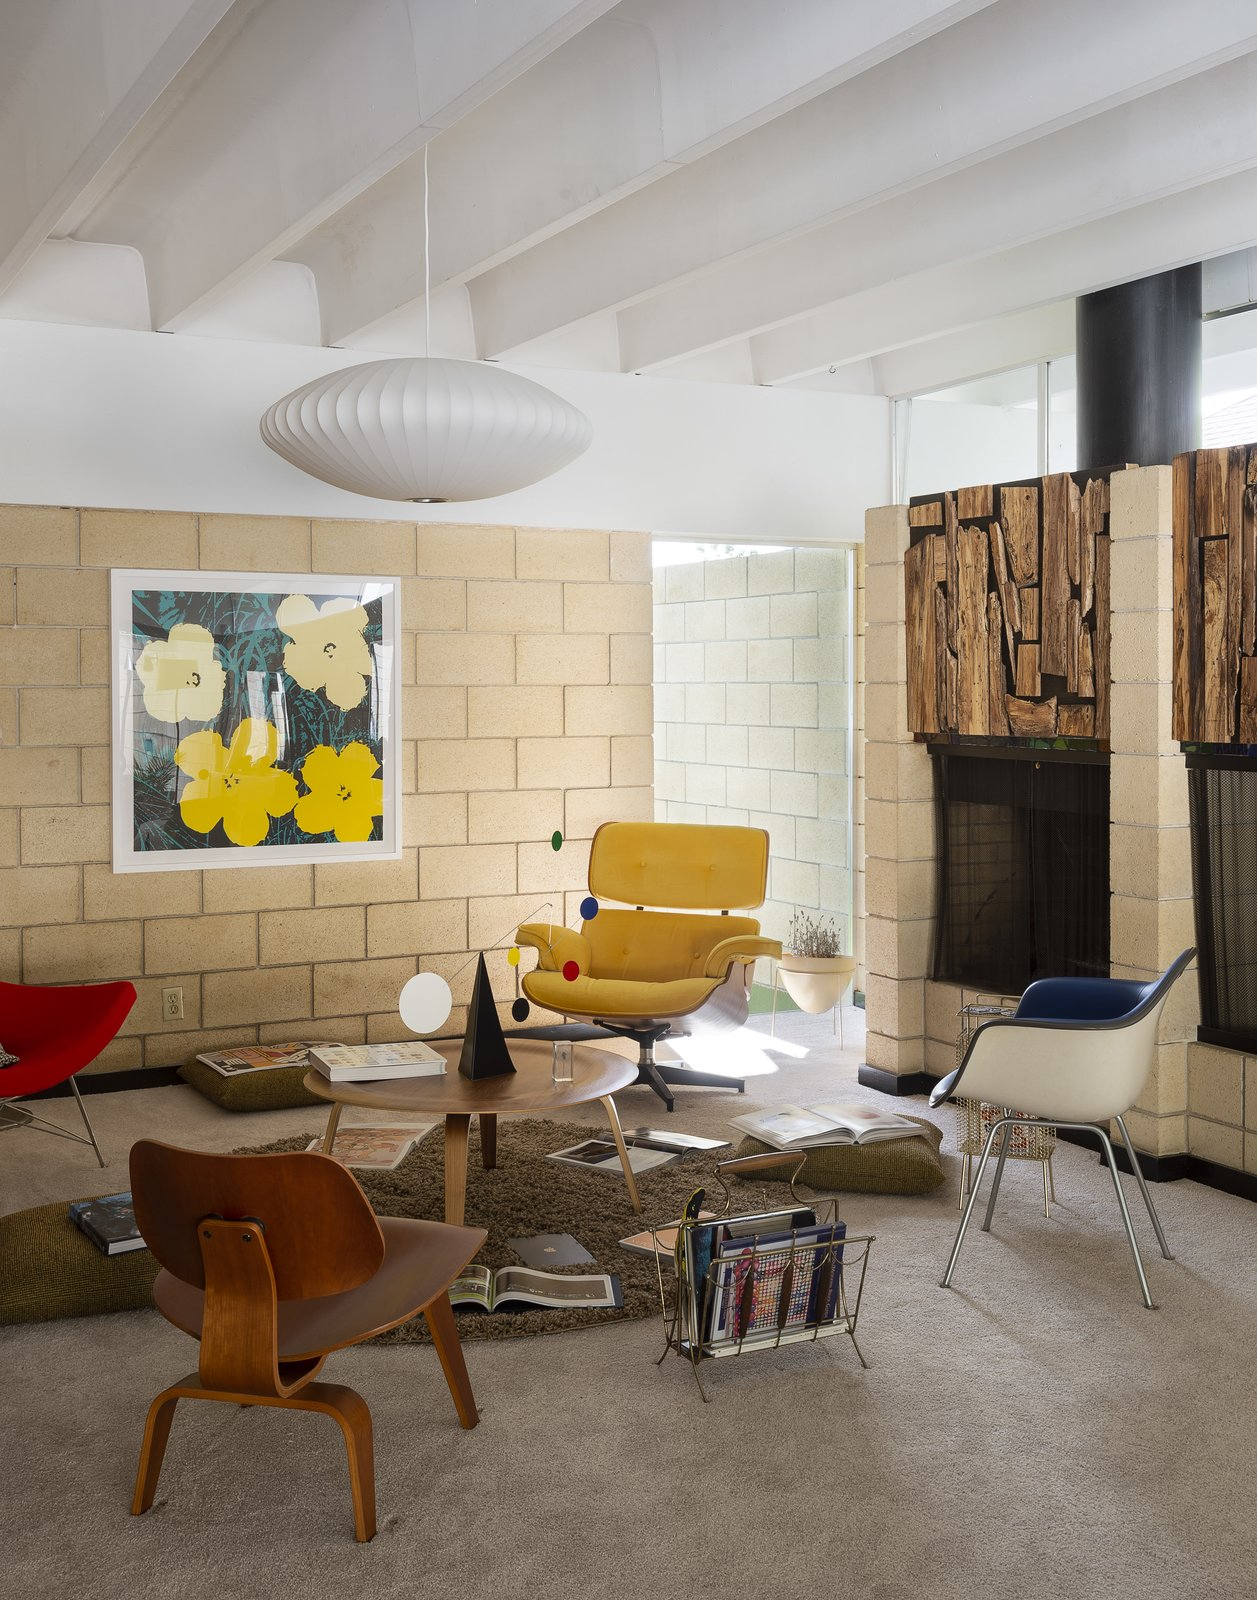 "Living Room, Carpet Floor, Standard Layout Fireplace, Chair, Coffee Tables, and Ceiling Lighting Artist Christopher Florentino says his respect for Gene Leedy drove his update of the architect's 1963 Ellison Residence in central Florida: ""Being original is important to me. I don't want Gene Leedy to come here and be like, 'Damn, you killed my vision.'"" In the living room, George Nelson's Saucer Bubble pendant hovers over Eames classics, like an LCW chair, a Molded Fiberglass armchair, and a Molded Plywood coffee table. Christopher found the lounge, an Eames replica, in a dumpster and couldn't let it go to waste. A Warhol print hangs from the sandstone block wall; the Ekko mobile is by Matthew Richards.  Photo 1 of 25 in Pop Art, Street Art, and Space-Age Furniture Collide at a Painter's Midcentury Ranch Home in Florida"